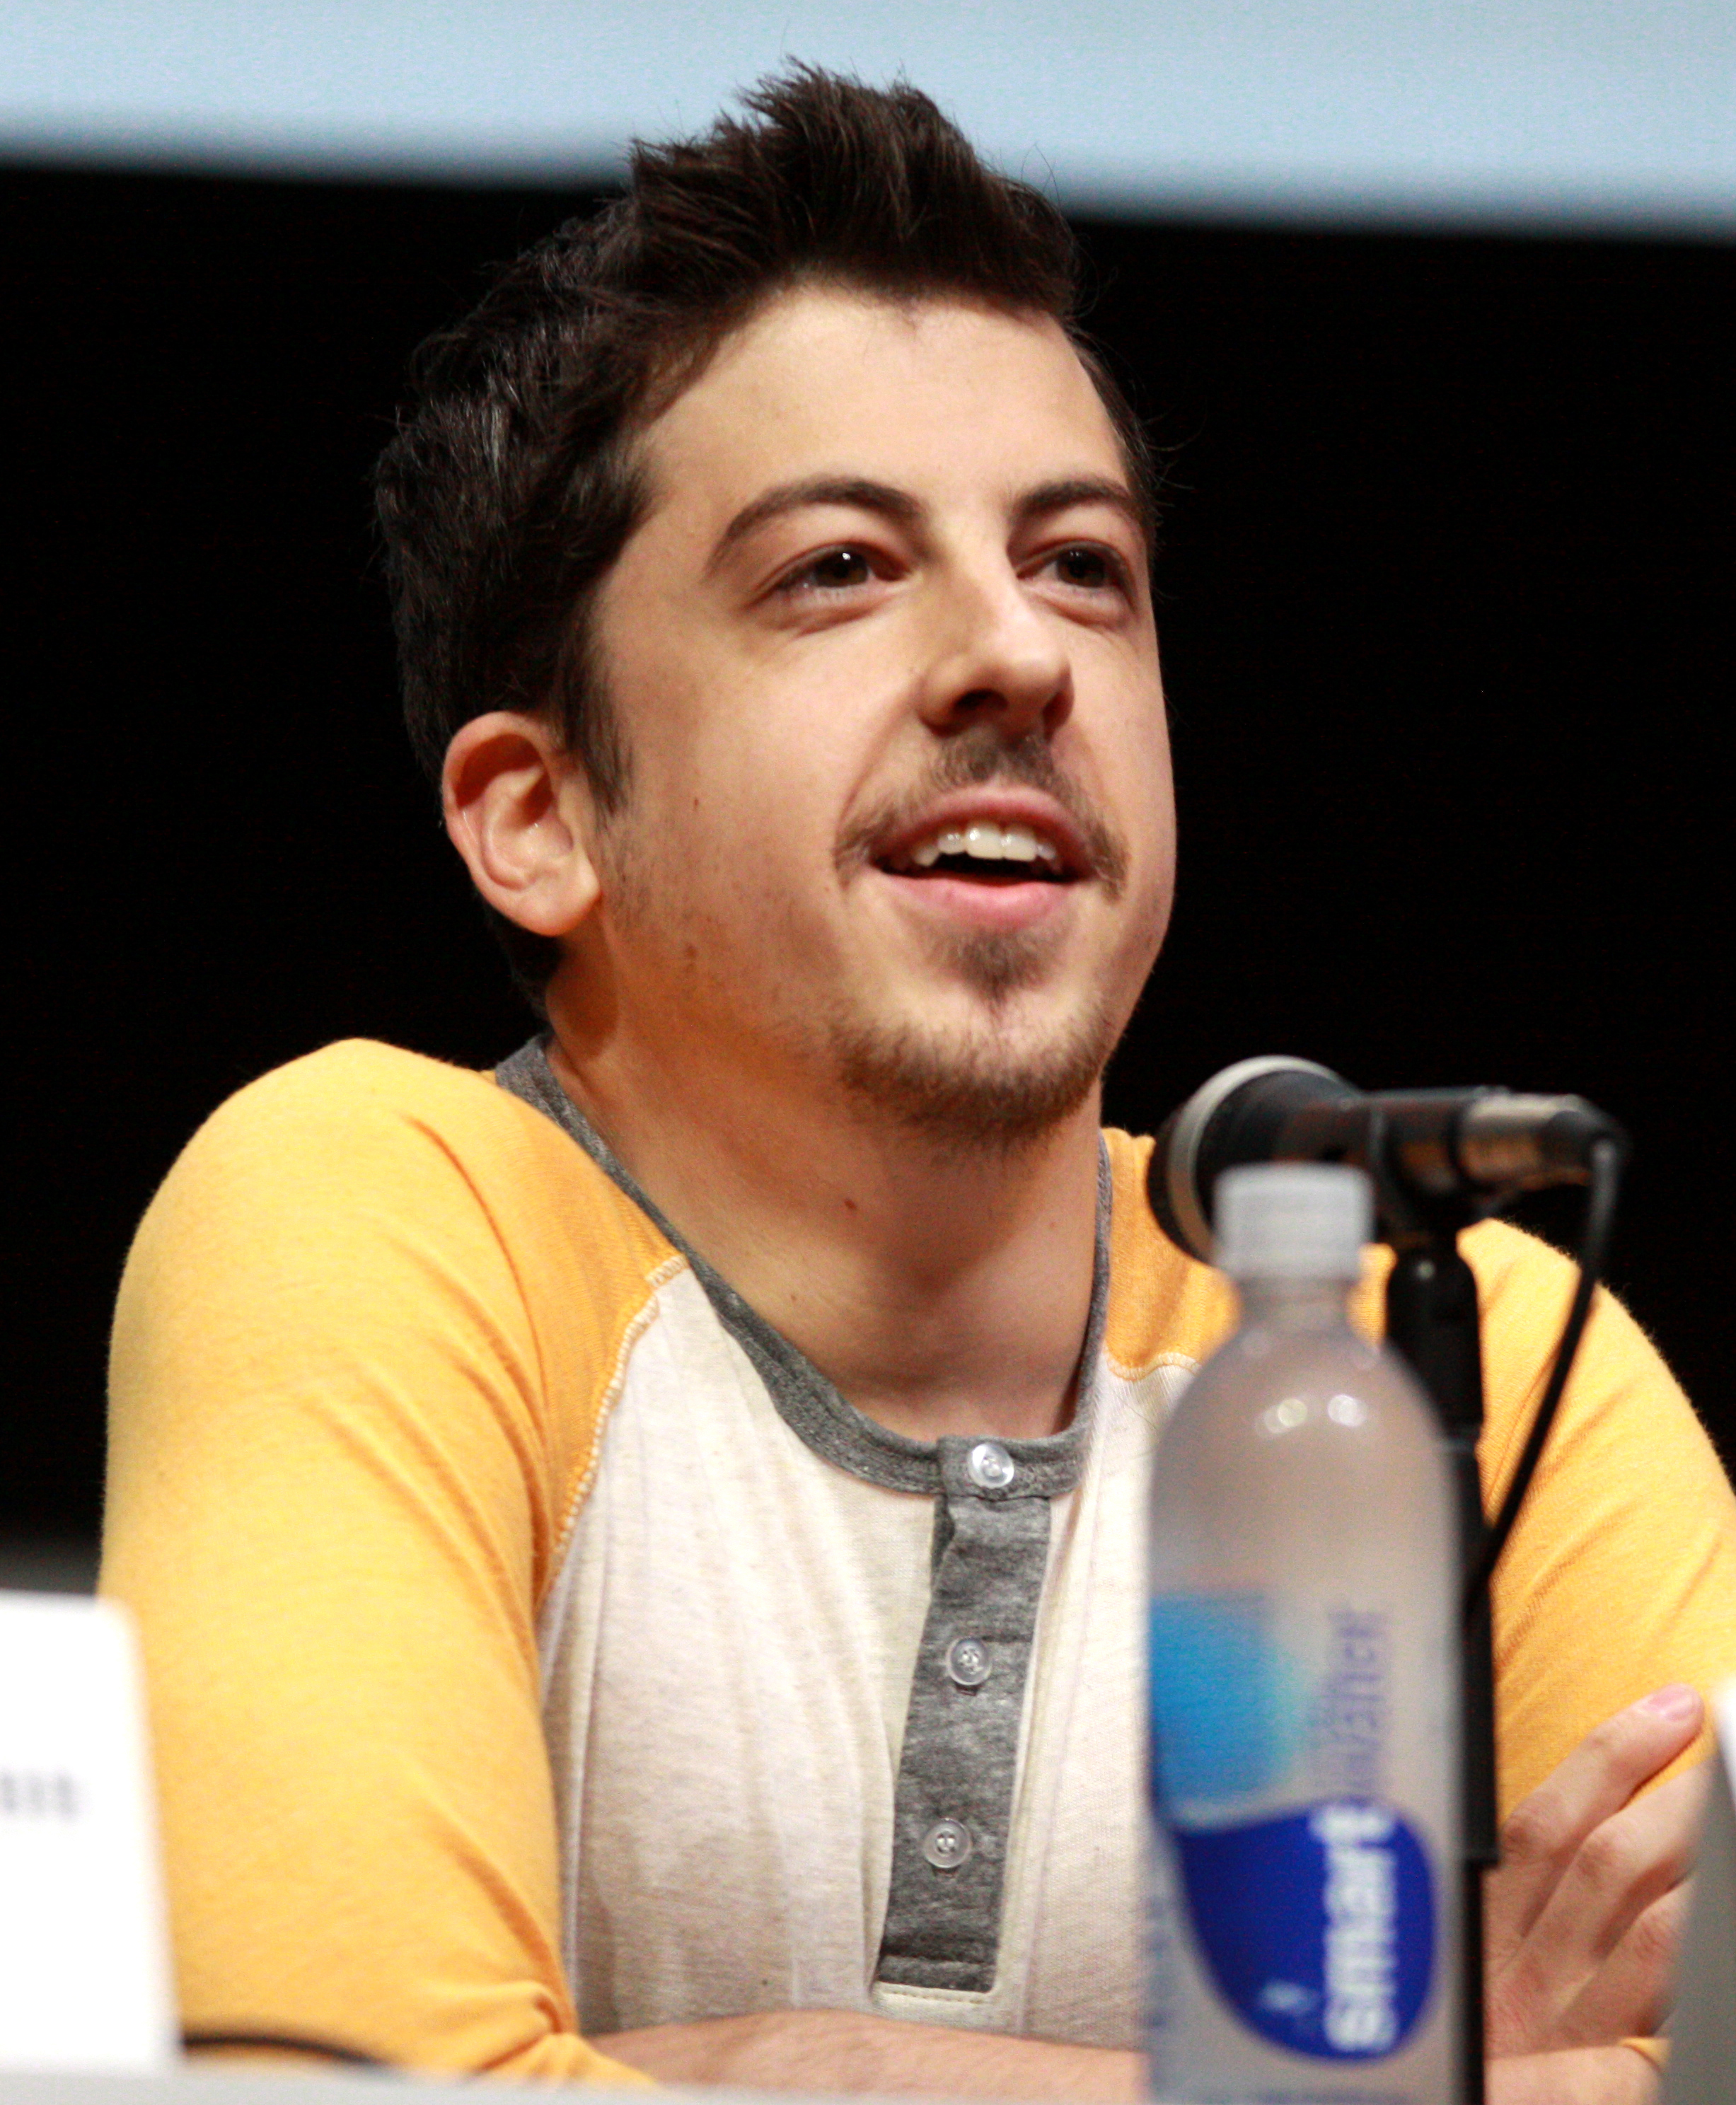 The 29-year old son of father Ray Plasse and mother Ellen Mintz Christopher Mintz-Plasse in 2018 photo. Christopher Mintz-Plasse earned a  million dollar salary - leaving the net worth at 10 million in 2018